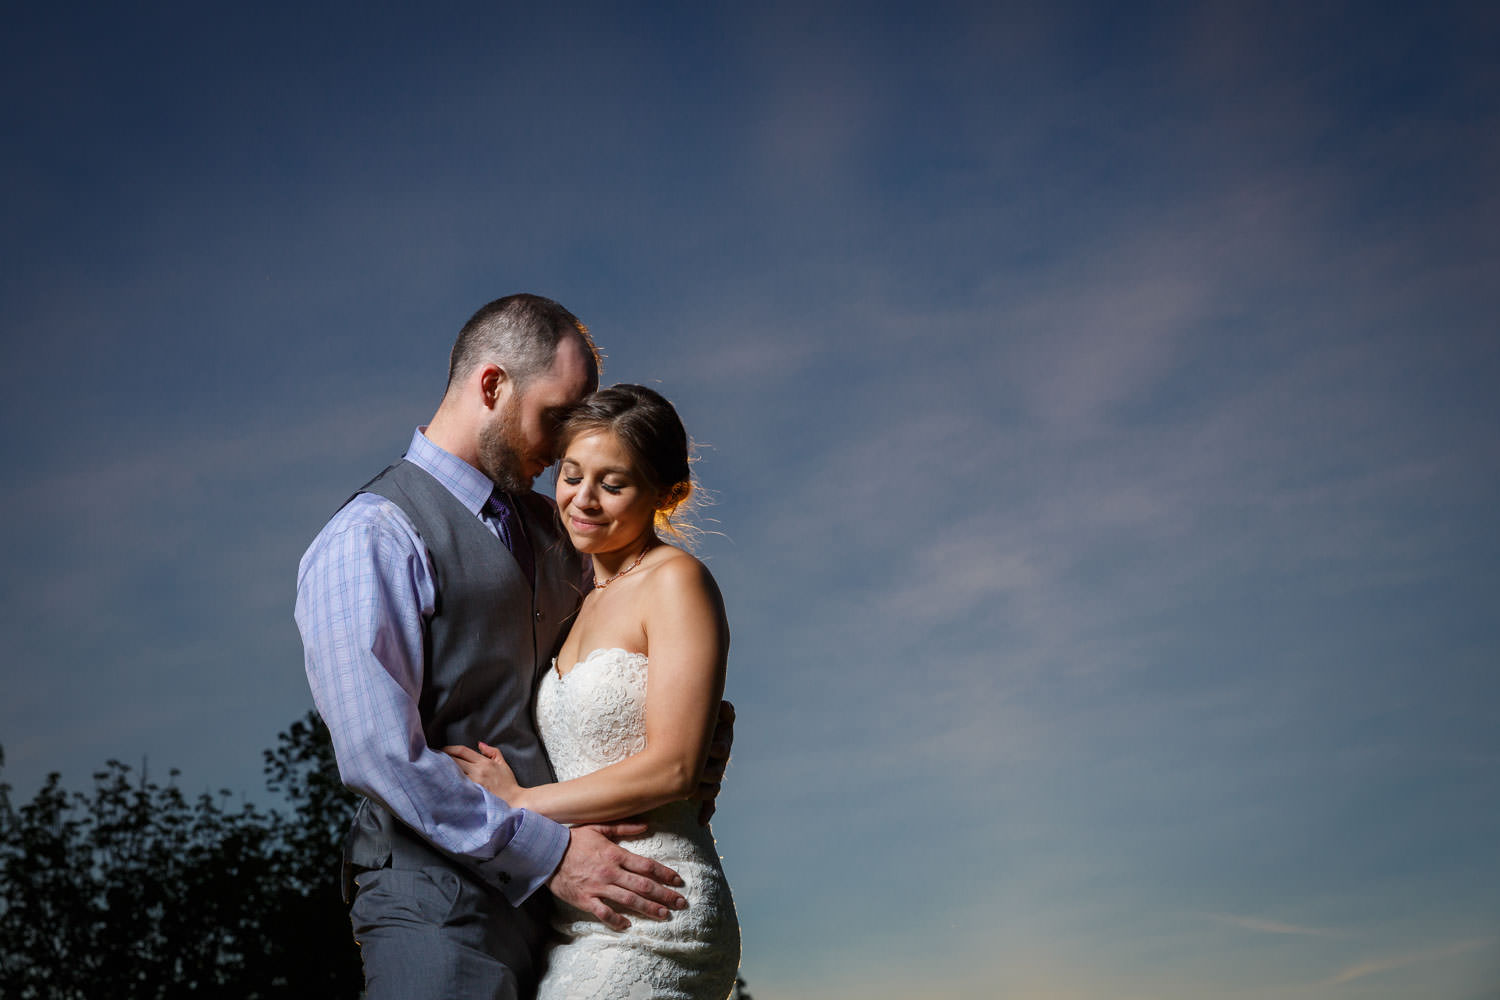 Bride and Groom portrait featuring bride at sunset